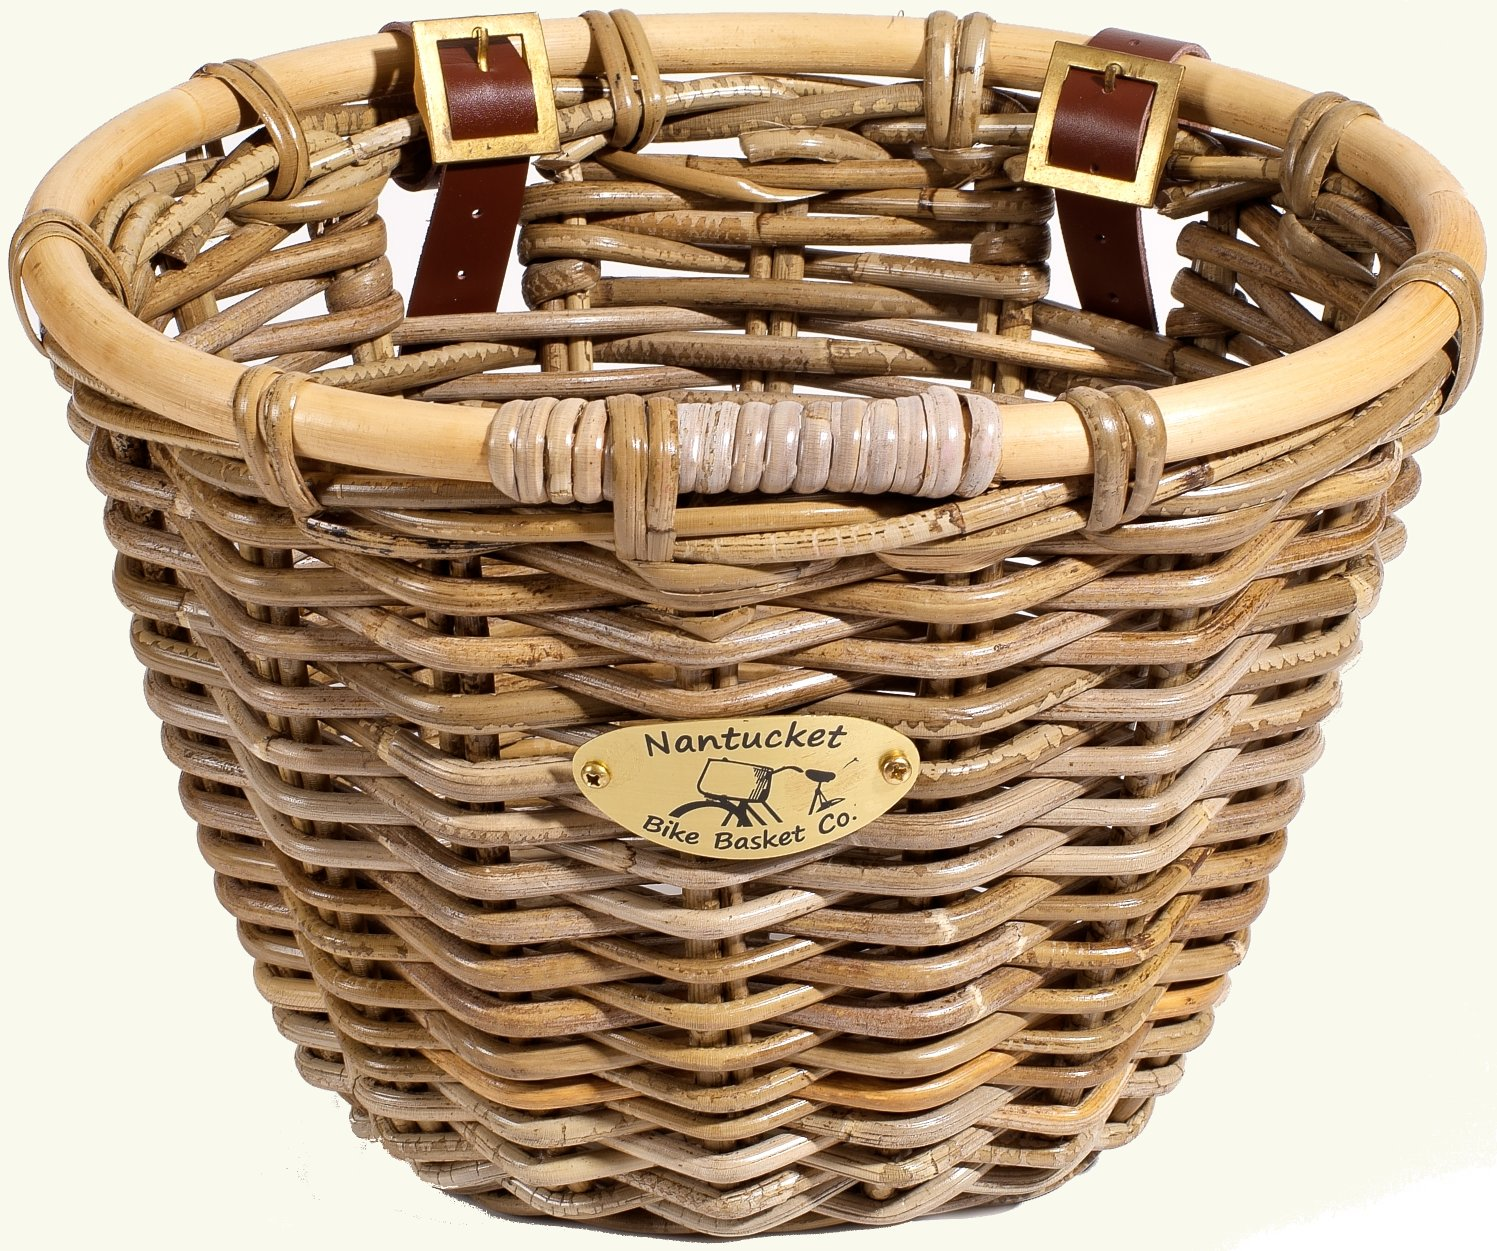 Nantucket Bike Baskets Tuckernuck Rattan Collection Oval